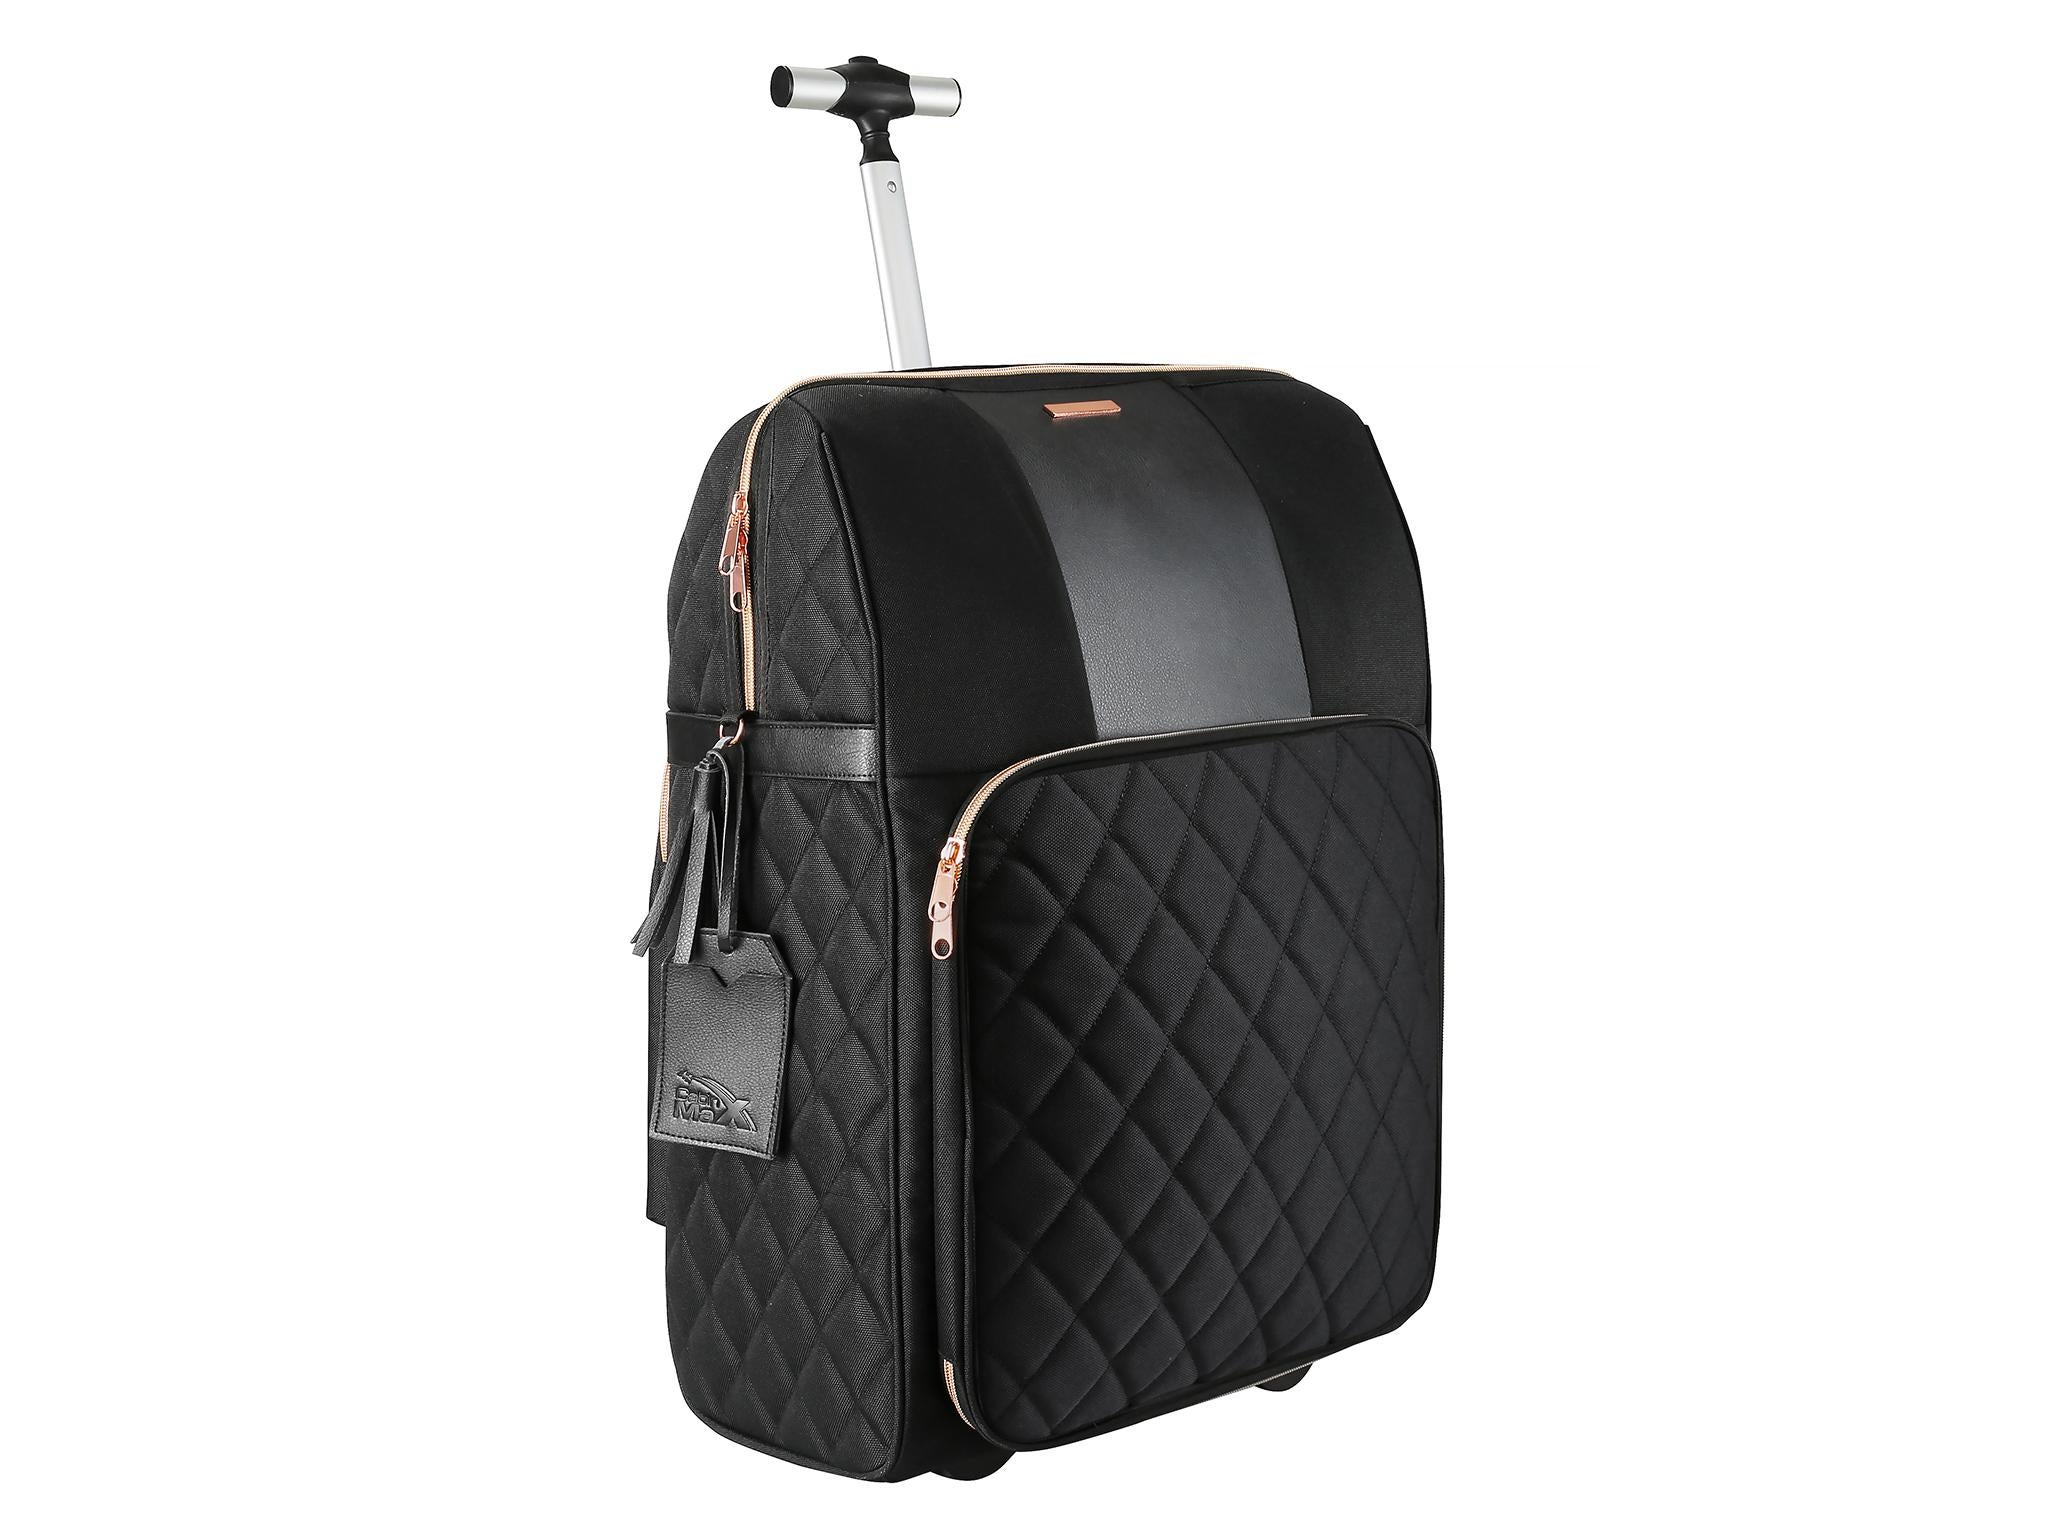 Travel Hack Pro Cabin Case with Handbag Compartment  £76 892f0ad7506c3